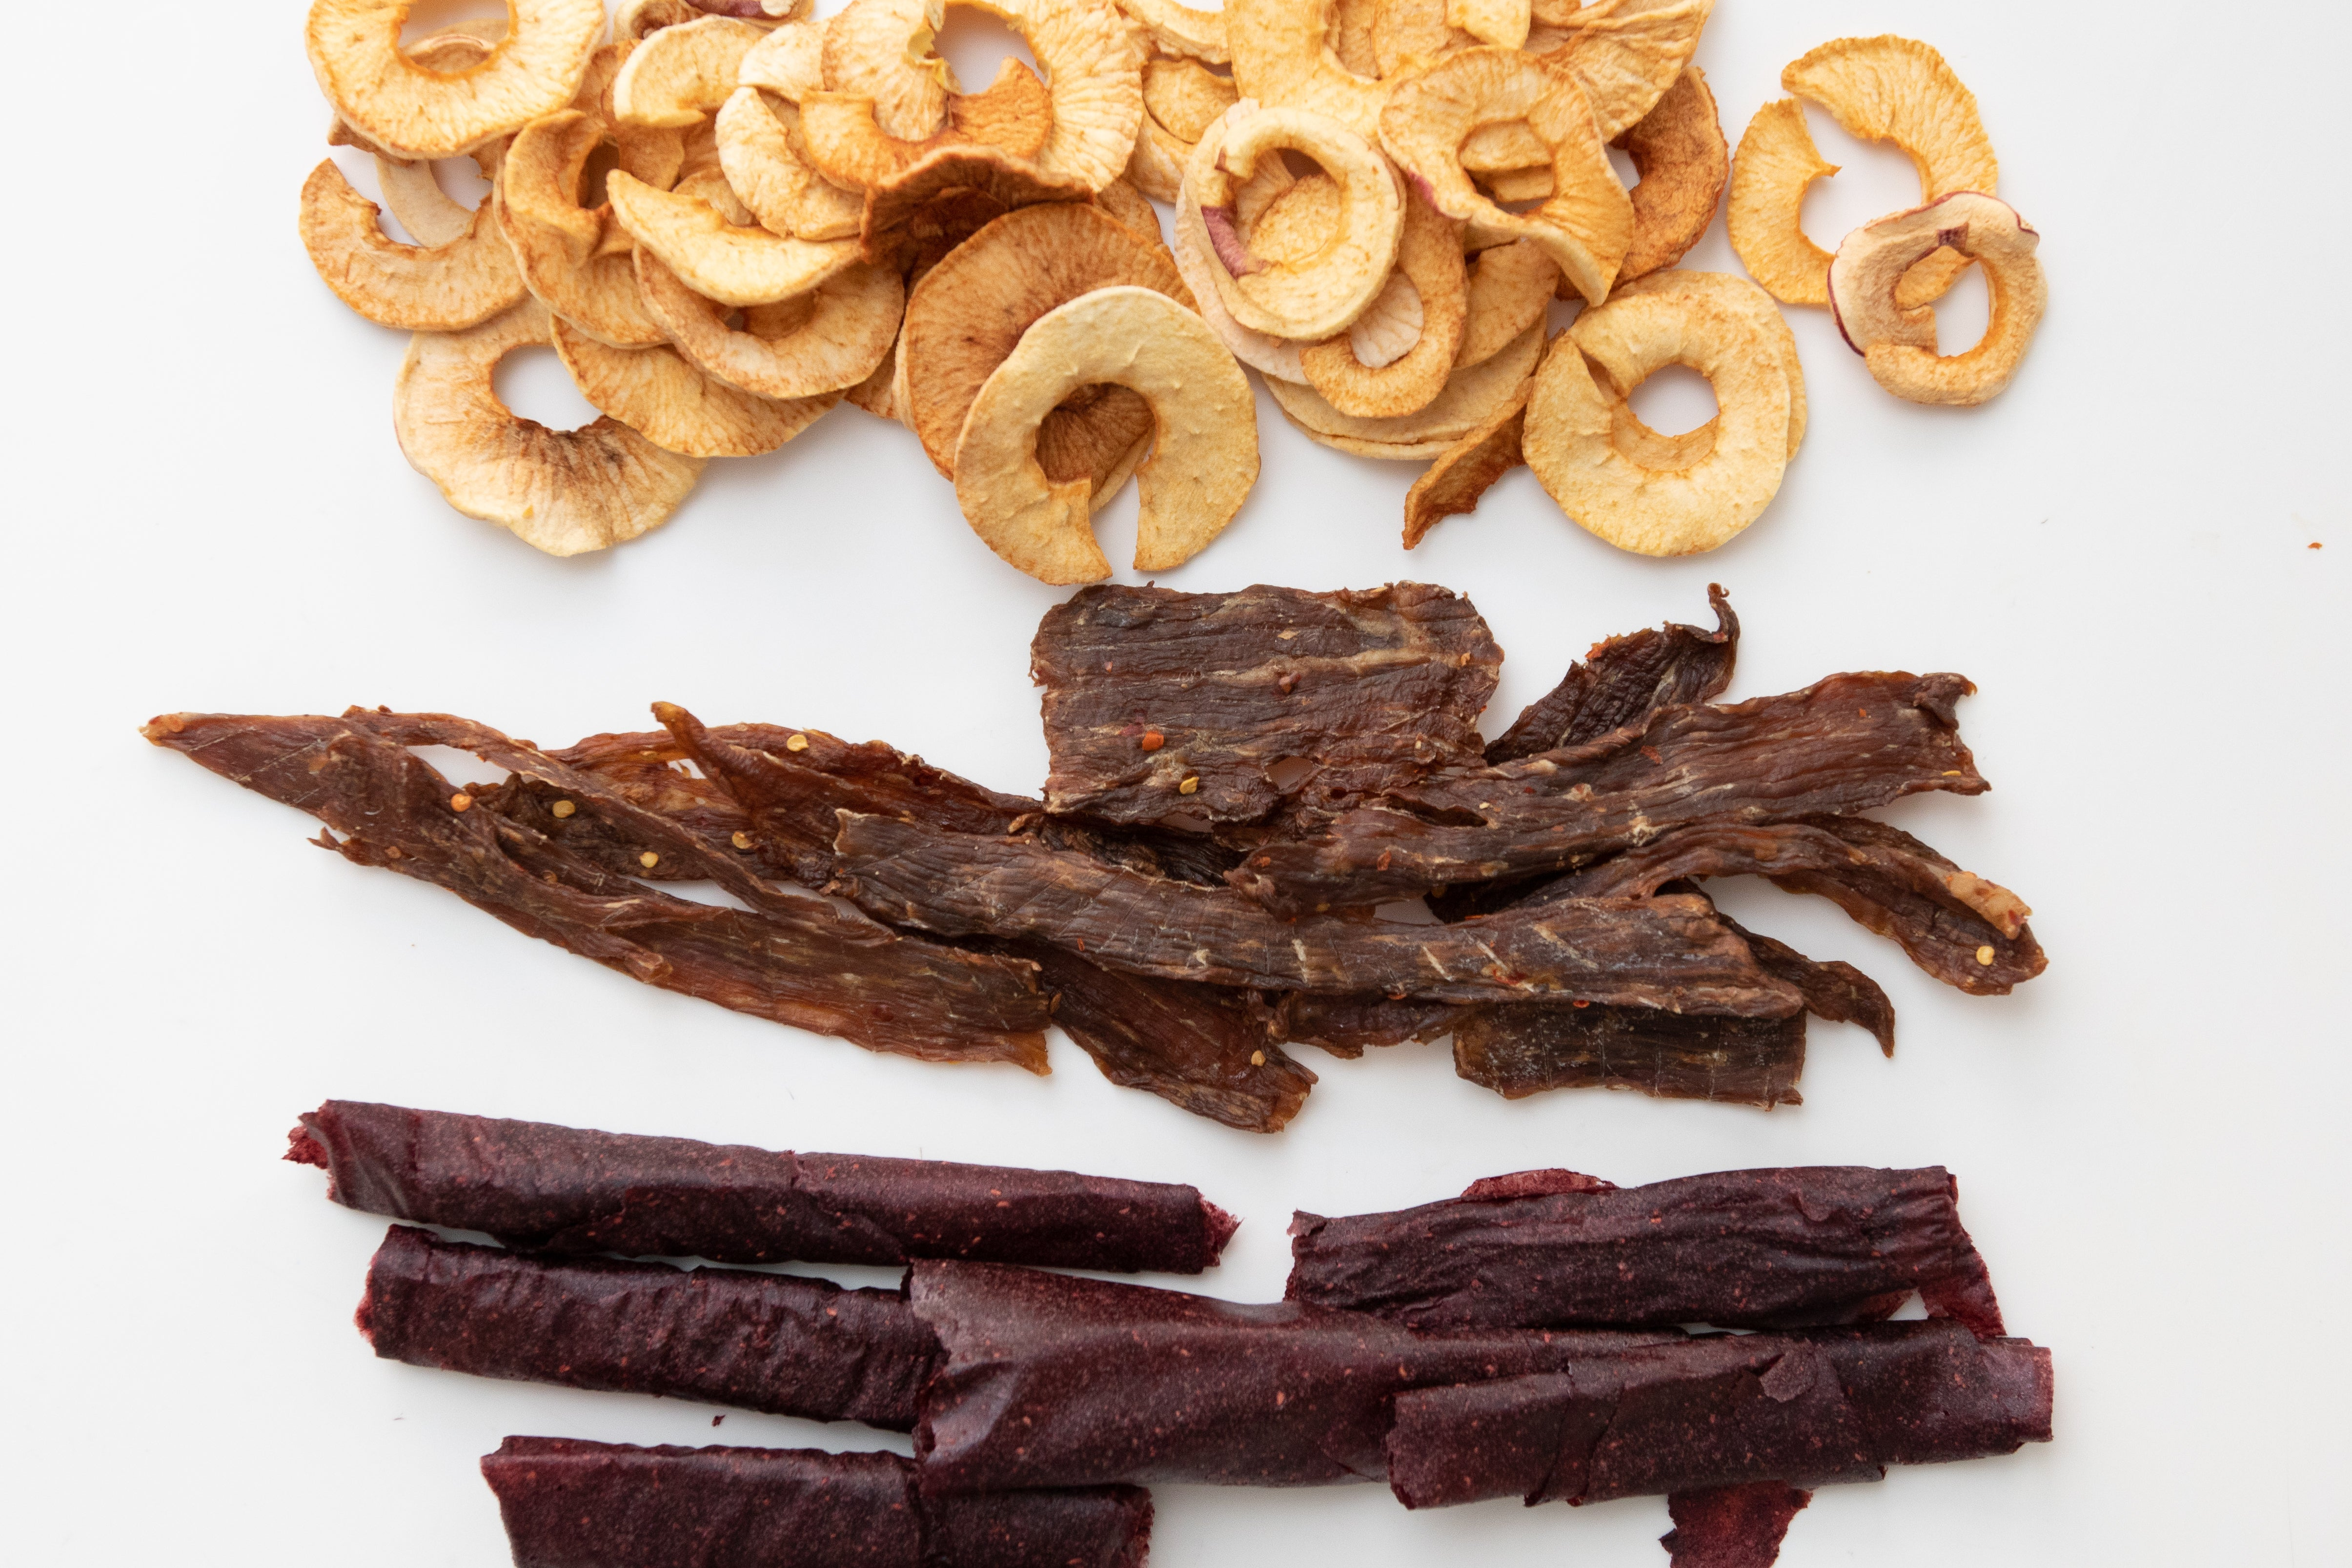 dried foods